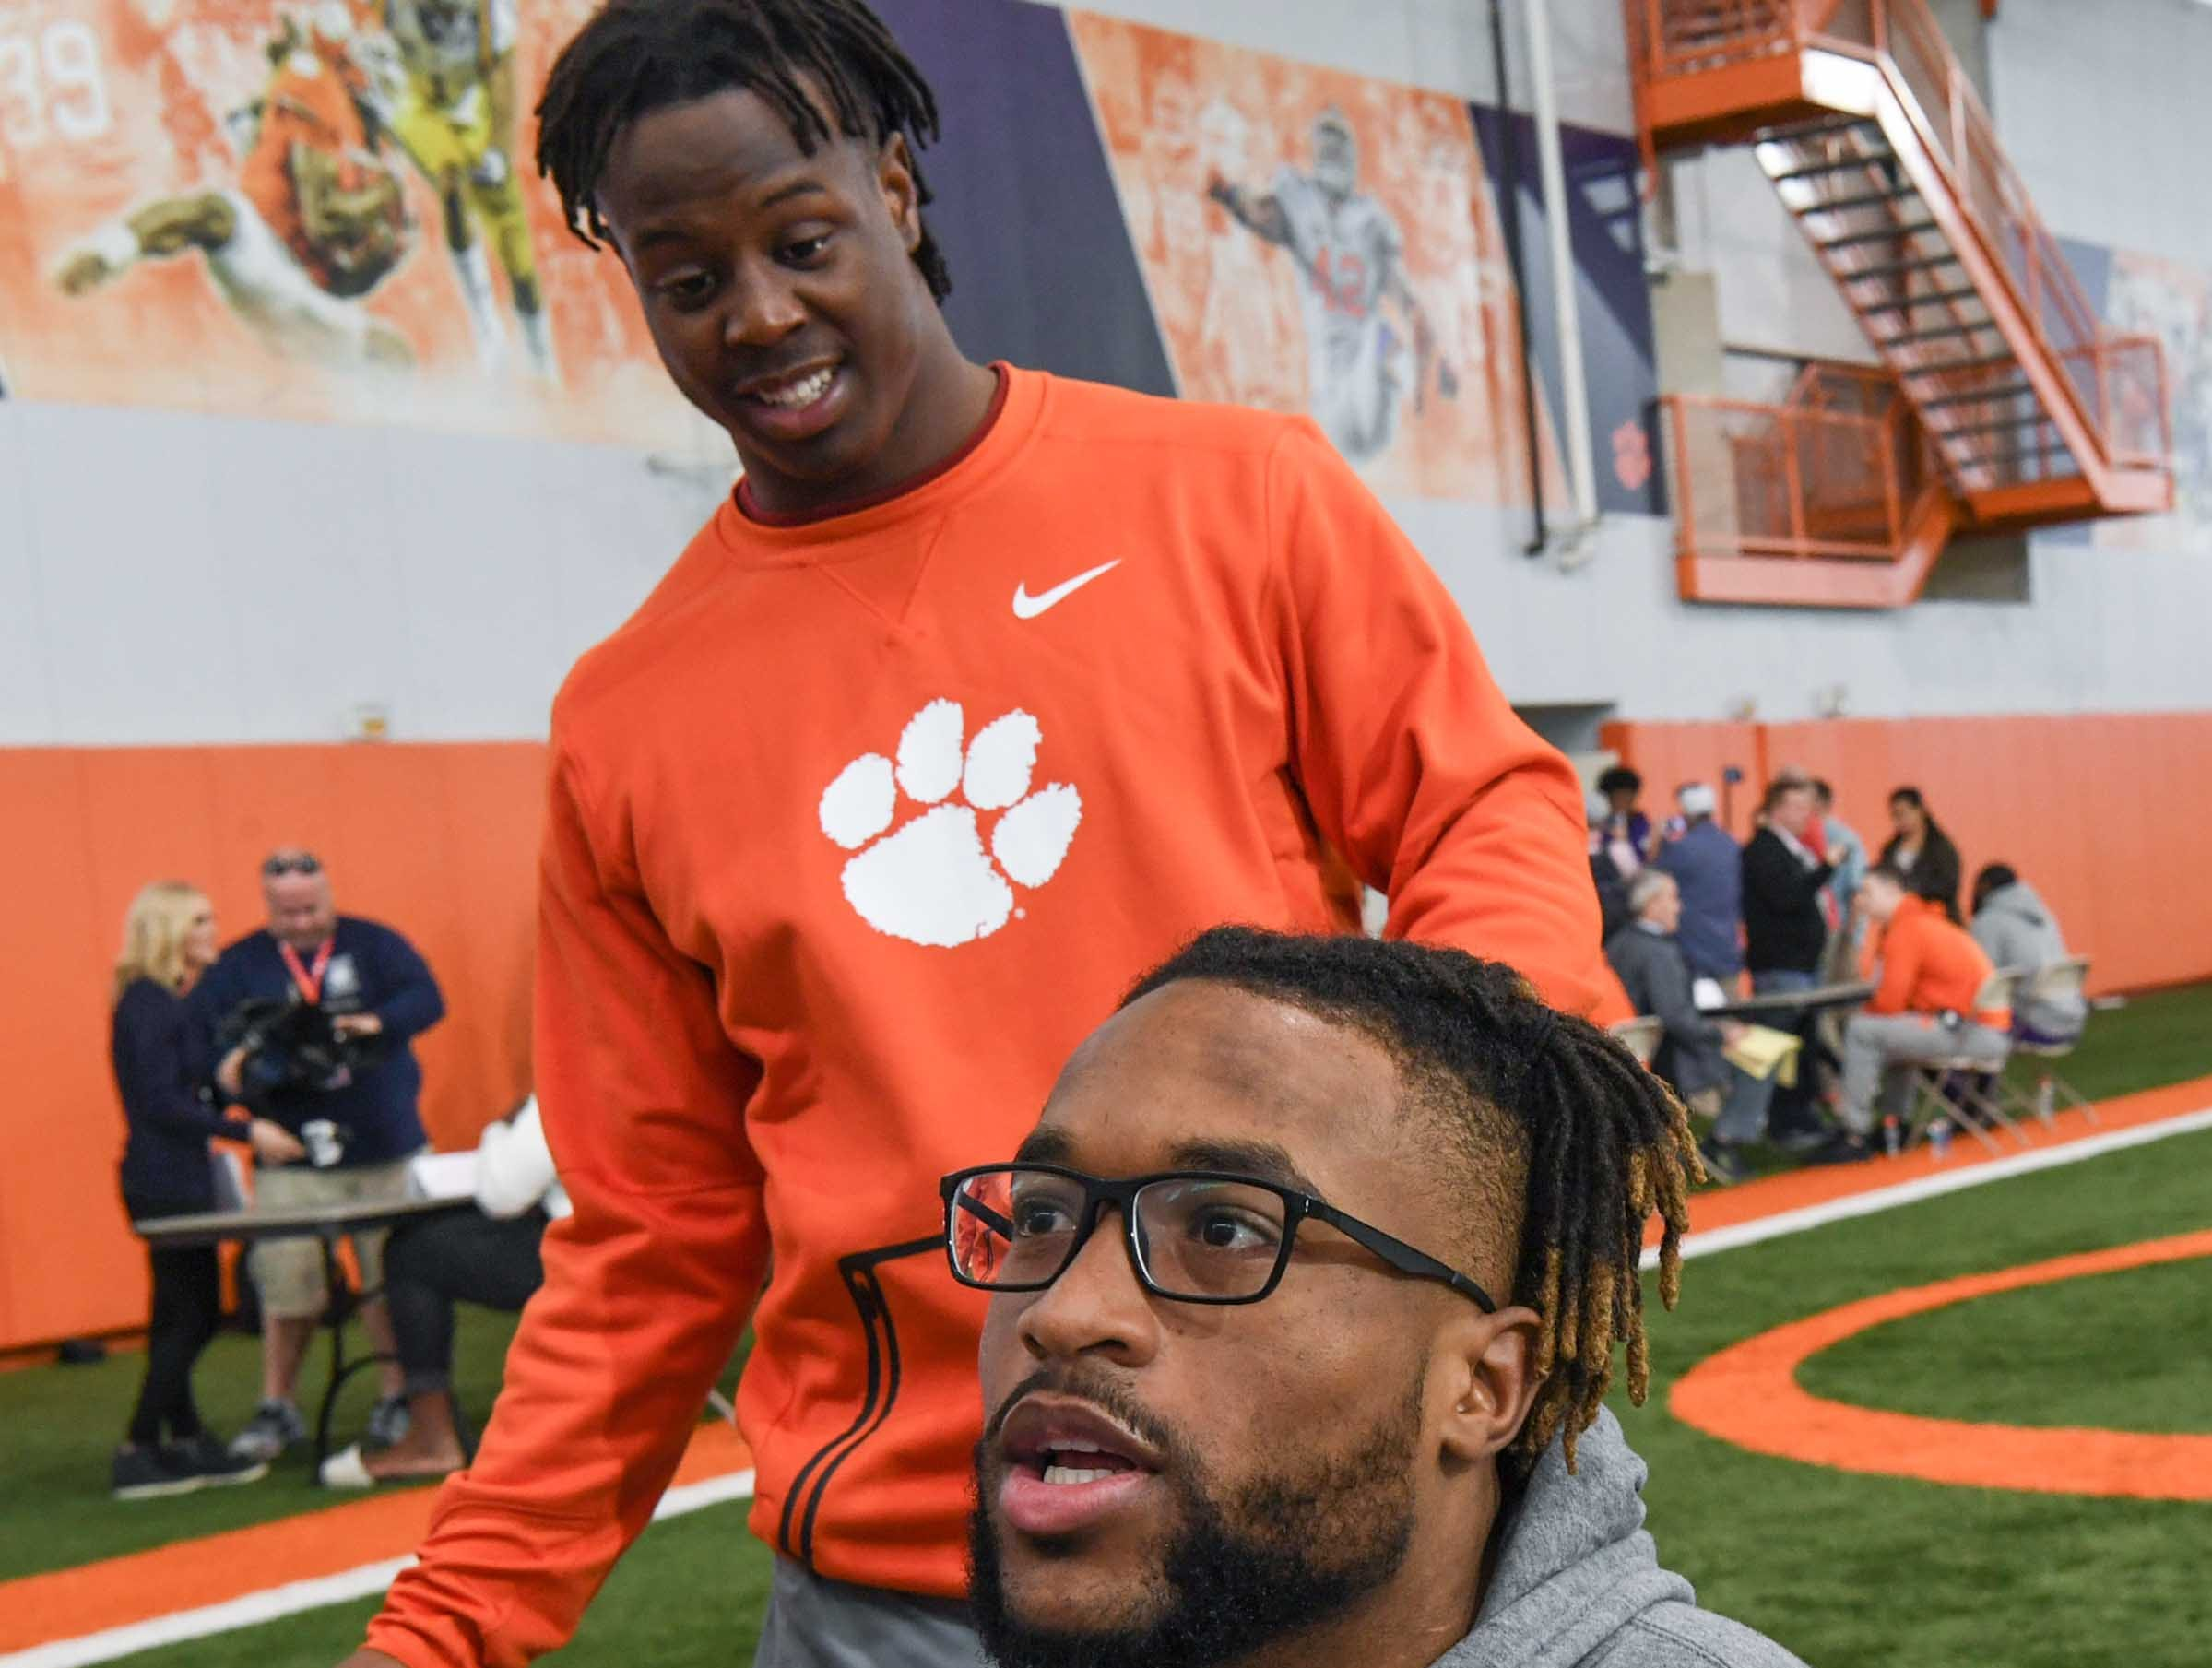 Clemson running back Travis Etienne, left, arrives to sit down while wide receiver Amari Rodgers talks during media day in the Poe Indoor Facility in Clemson Wednesday, January 2, 2019.